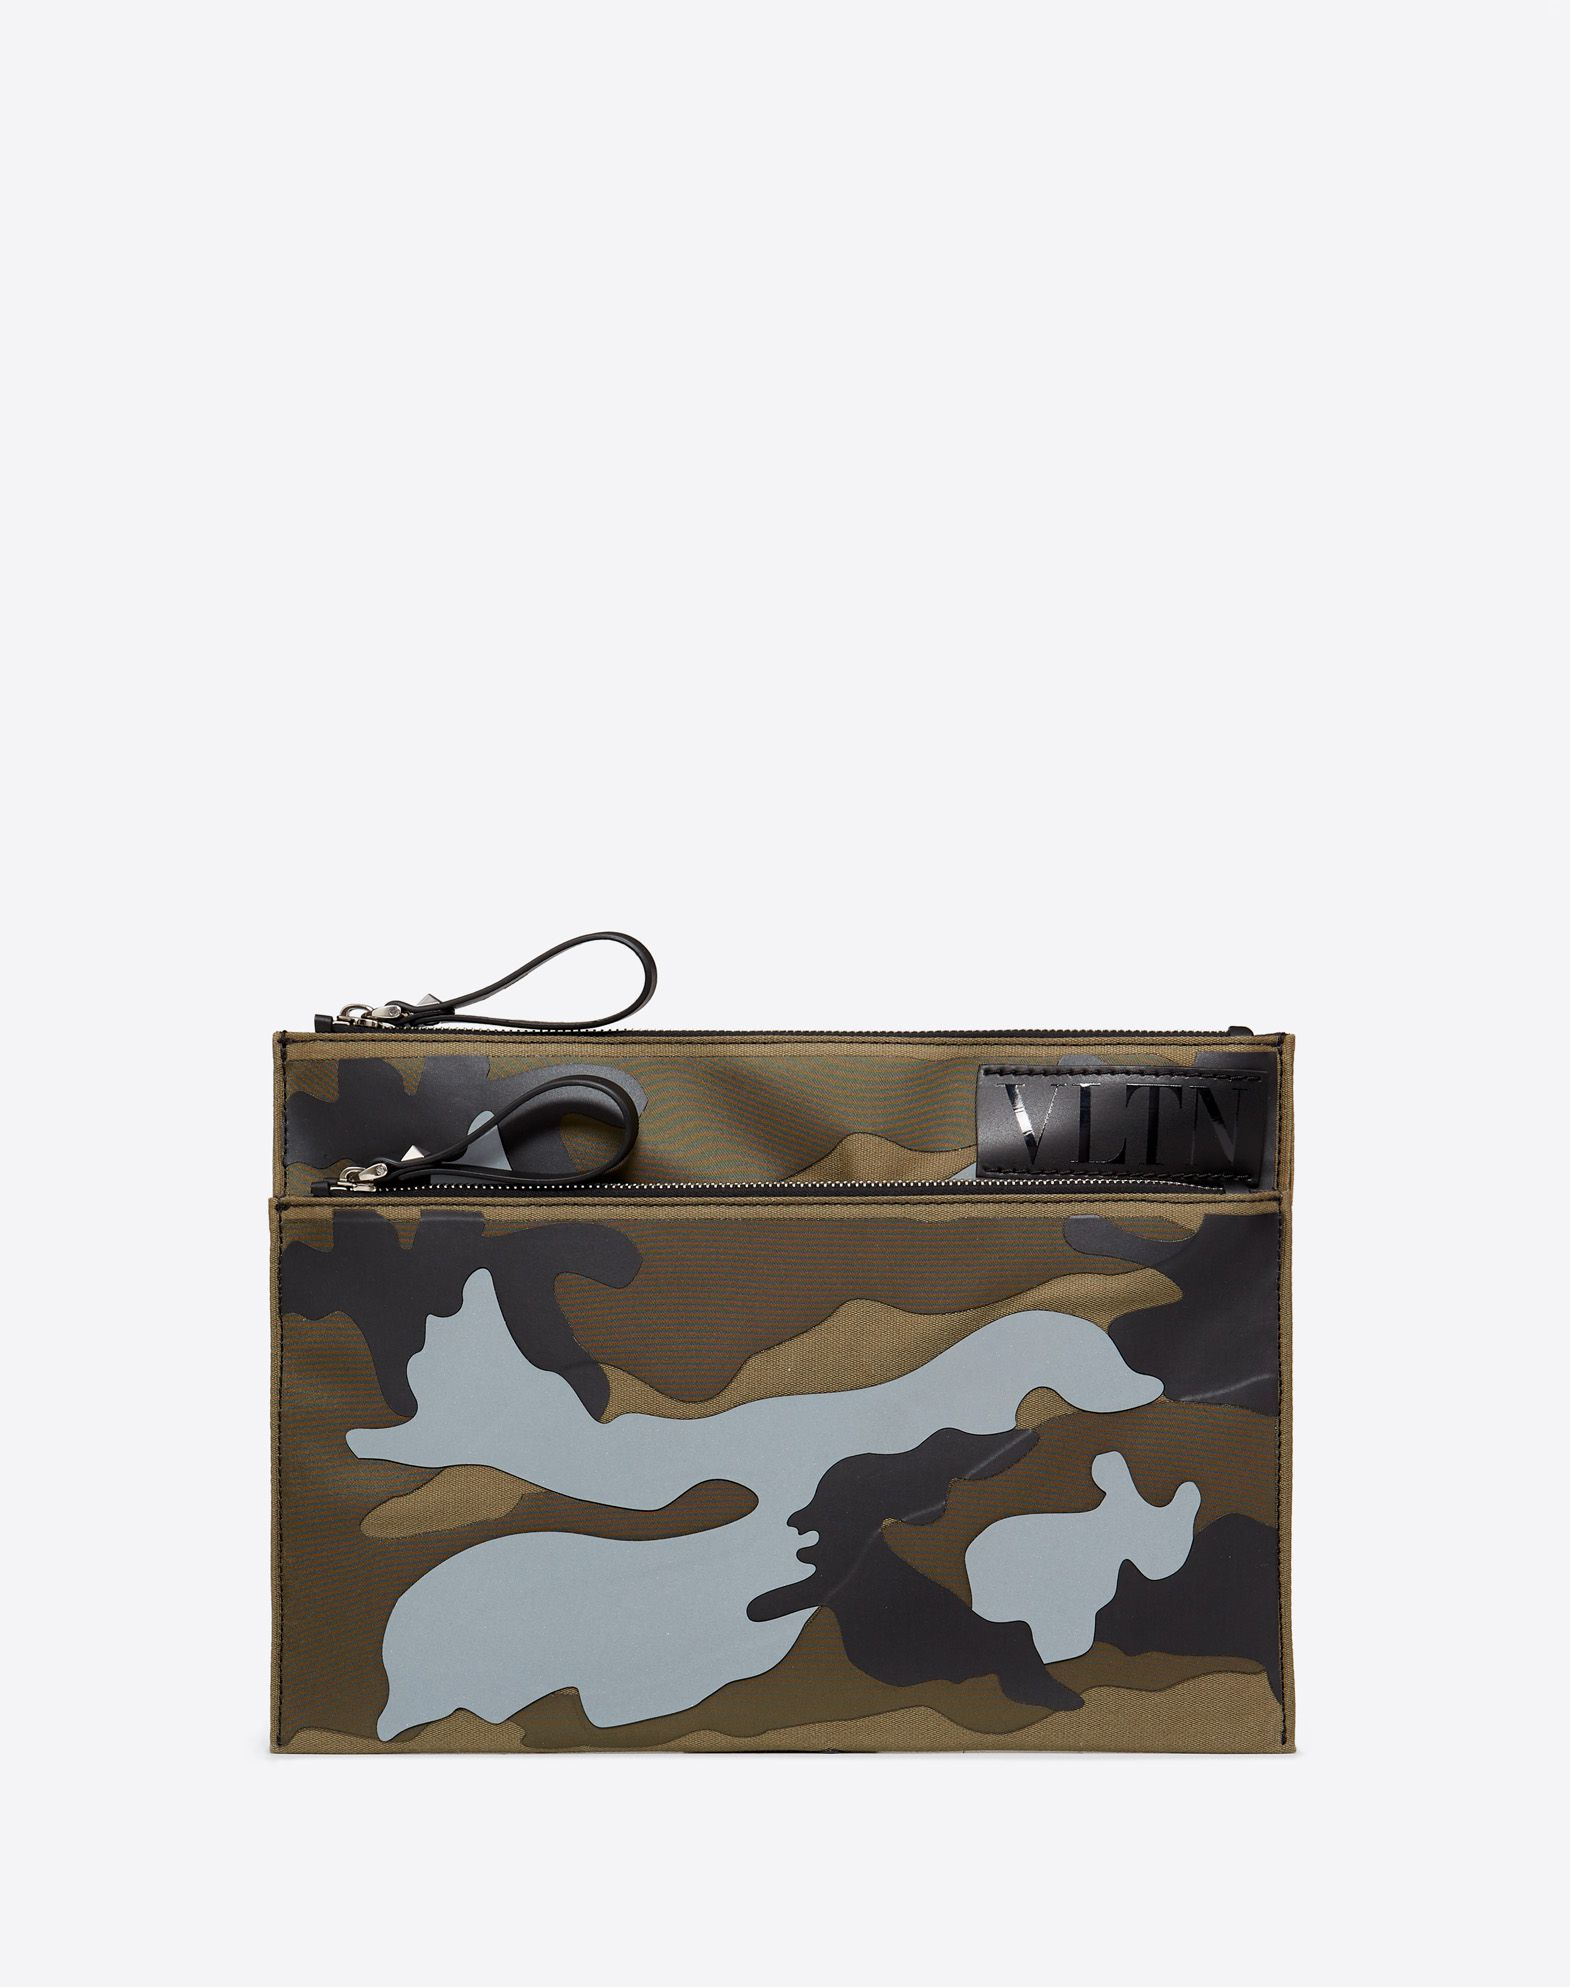 VLTN CAMOUFLAGE MEDIUM SHINY CANVAS MESSENGER BAG WITH REFLECTIVE DETAIL